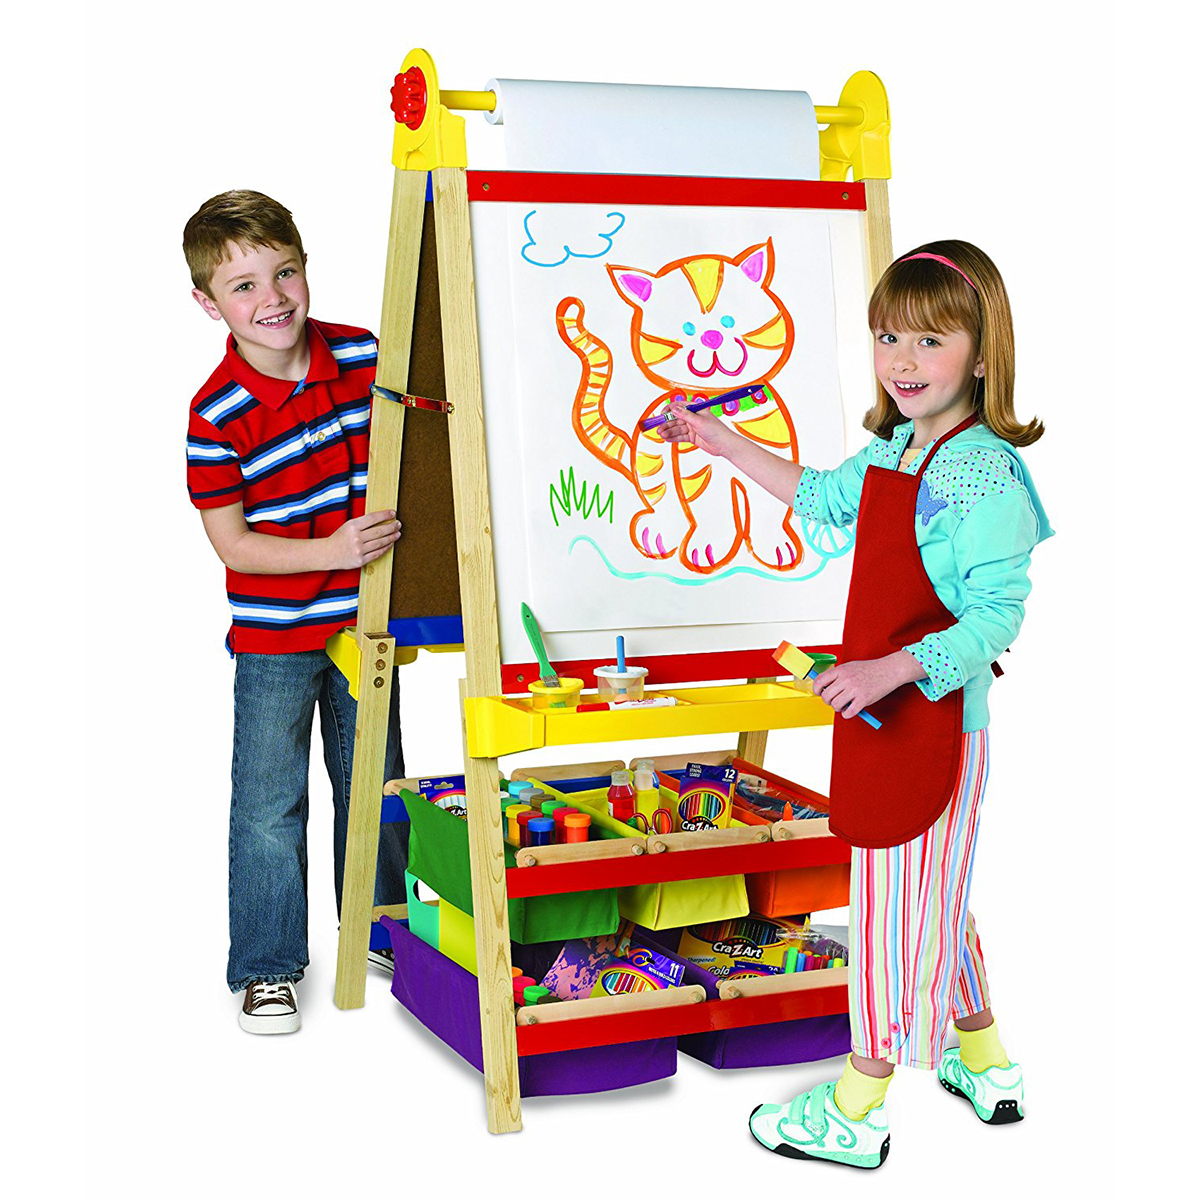 Buy The Cra Z Artr 4 In 1 Ultimate Art Easel At Michaels